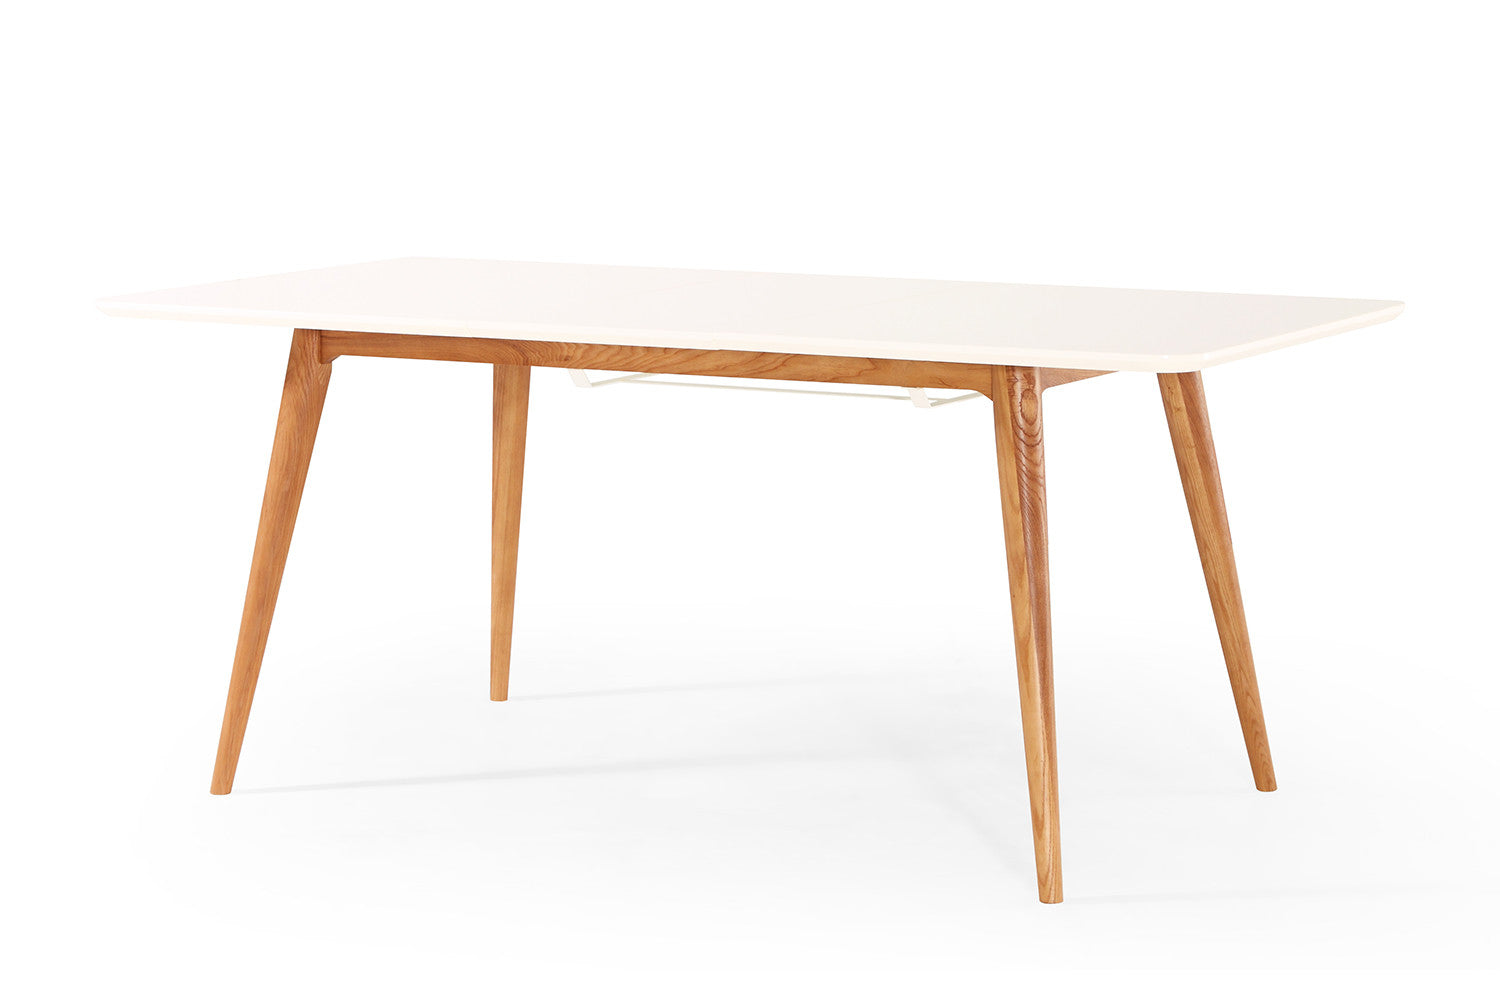 Table salle a manger scandinave extensible for Table salle a manger escamotable